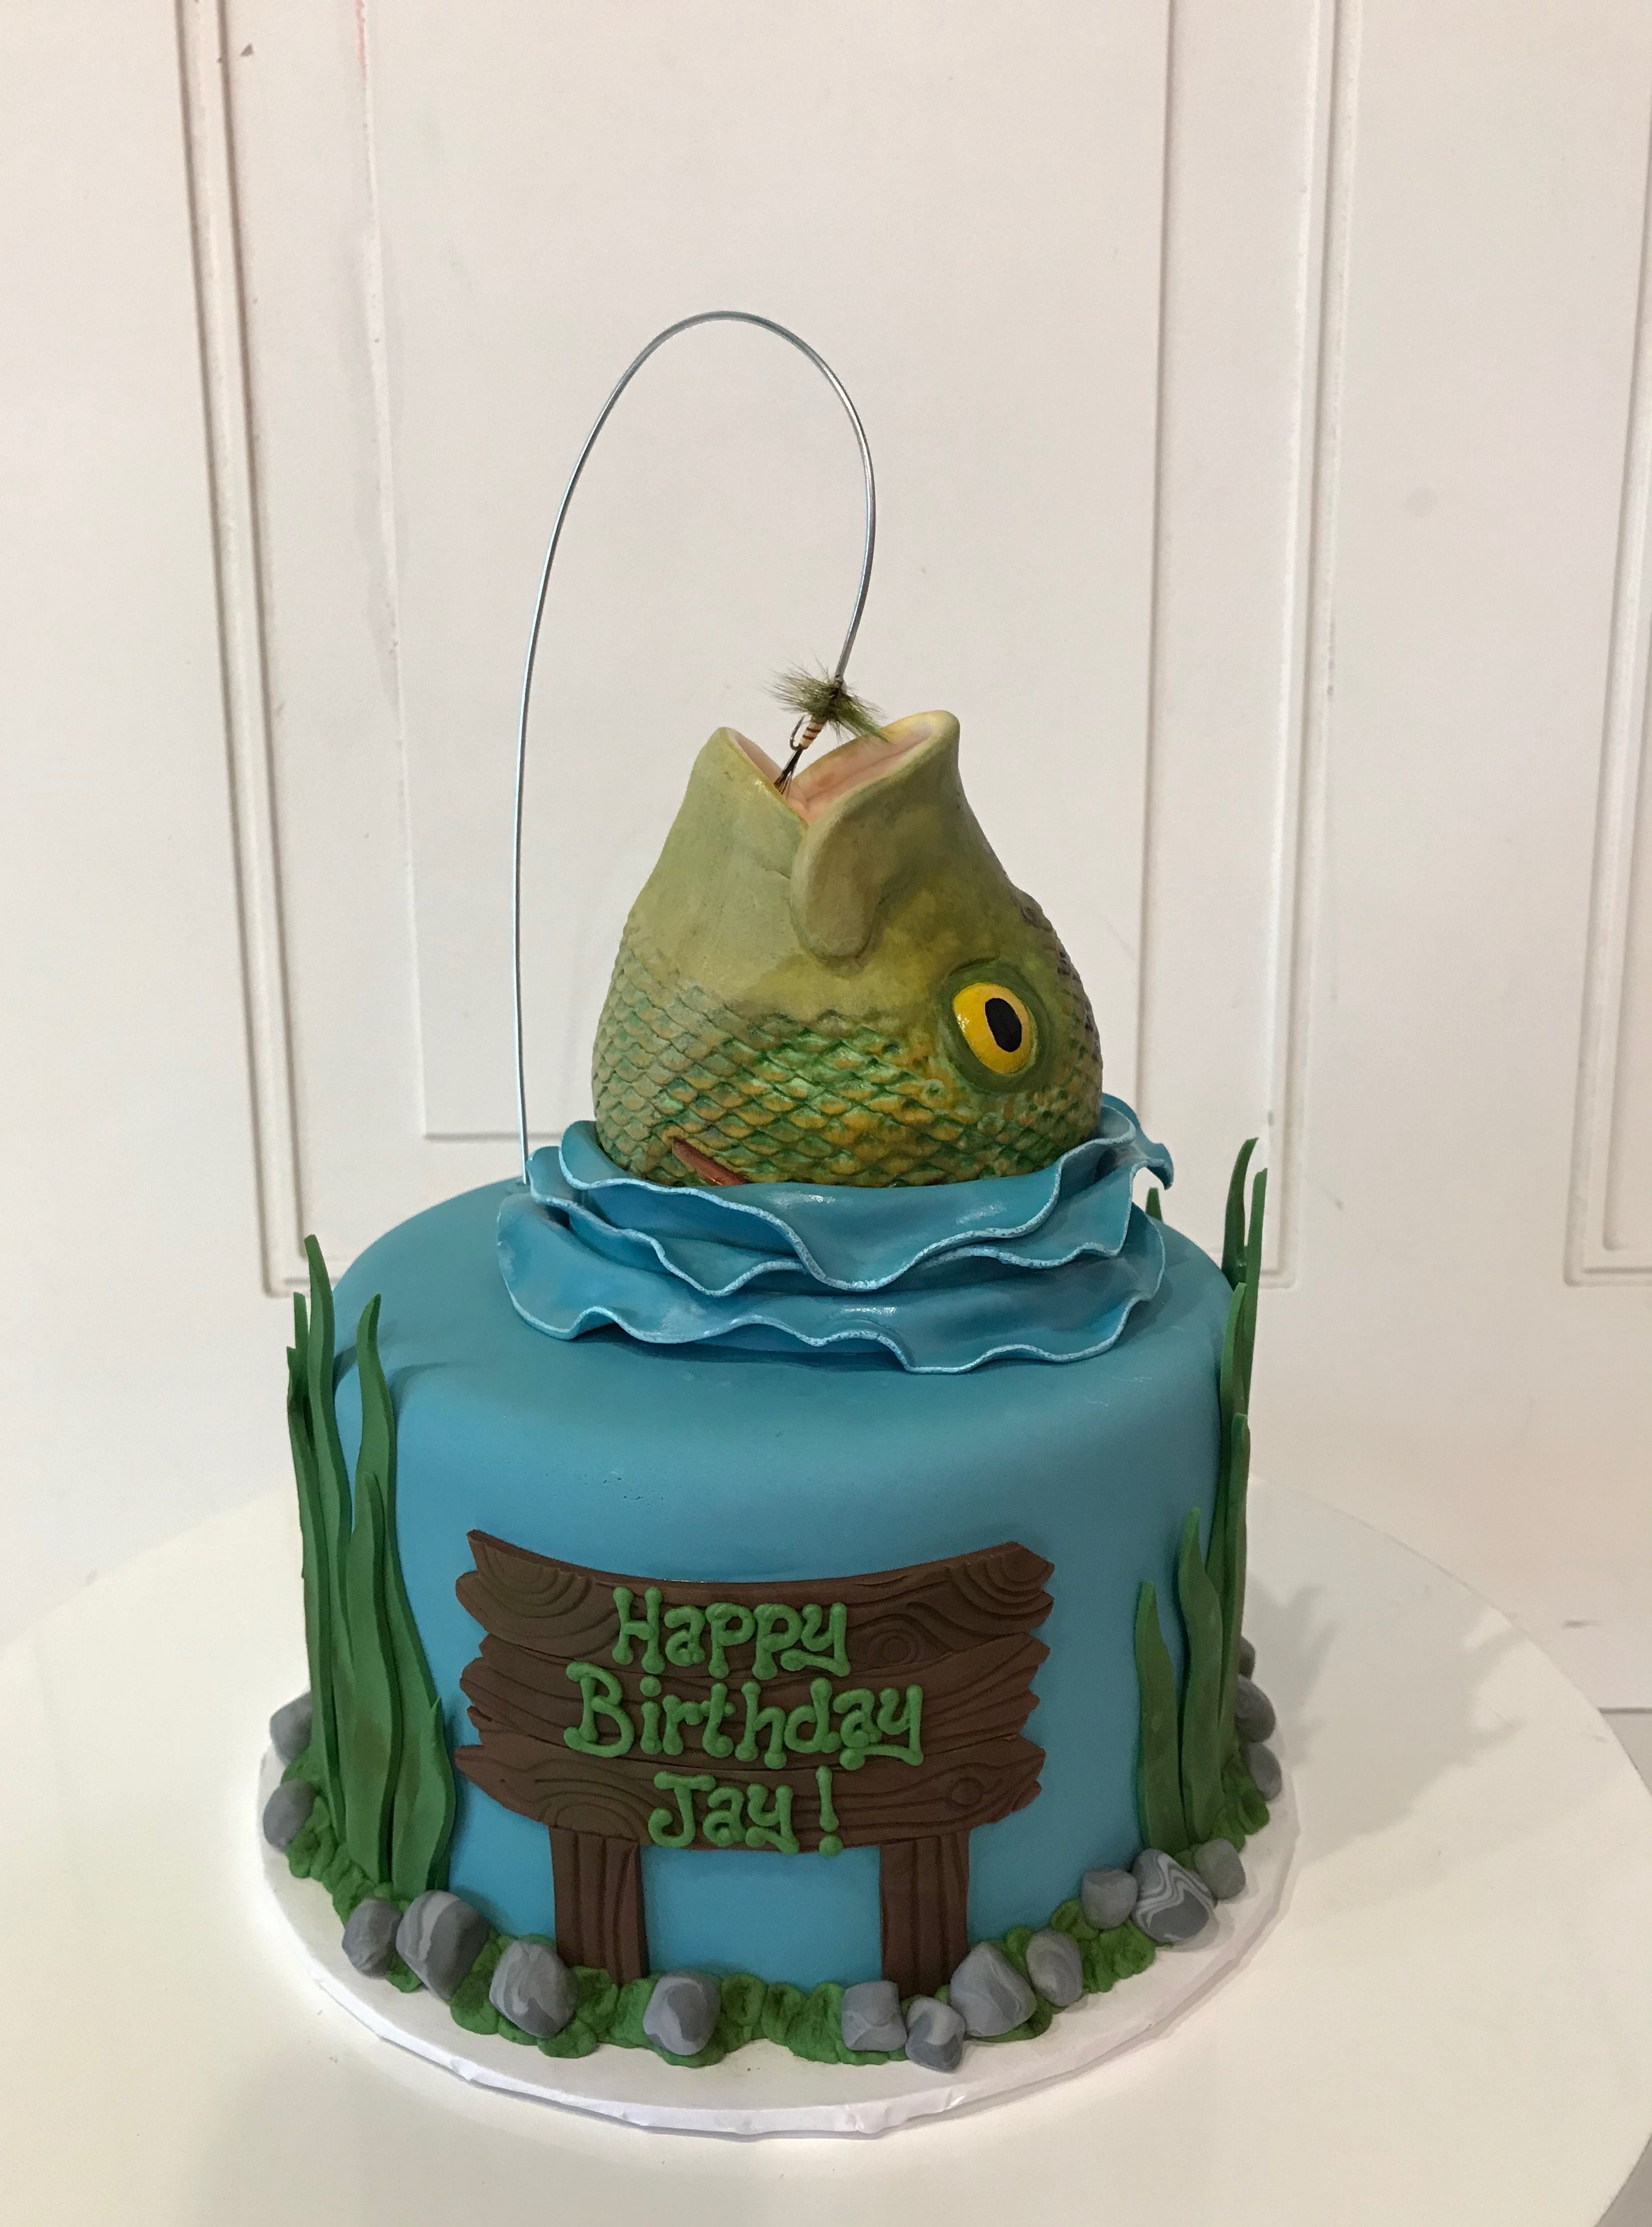 Cakes For Him Including Grooms Cakes Fish Cake Birthday Fish Cake Hunting Birthday Cakes